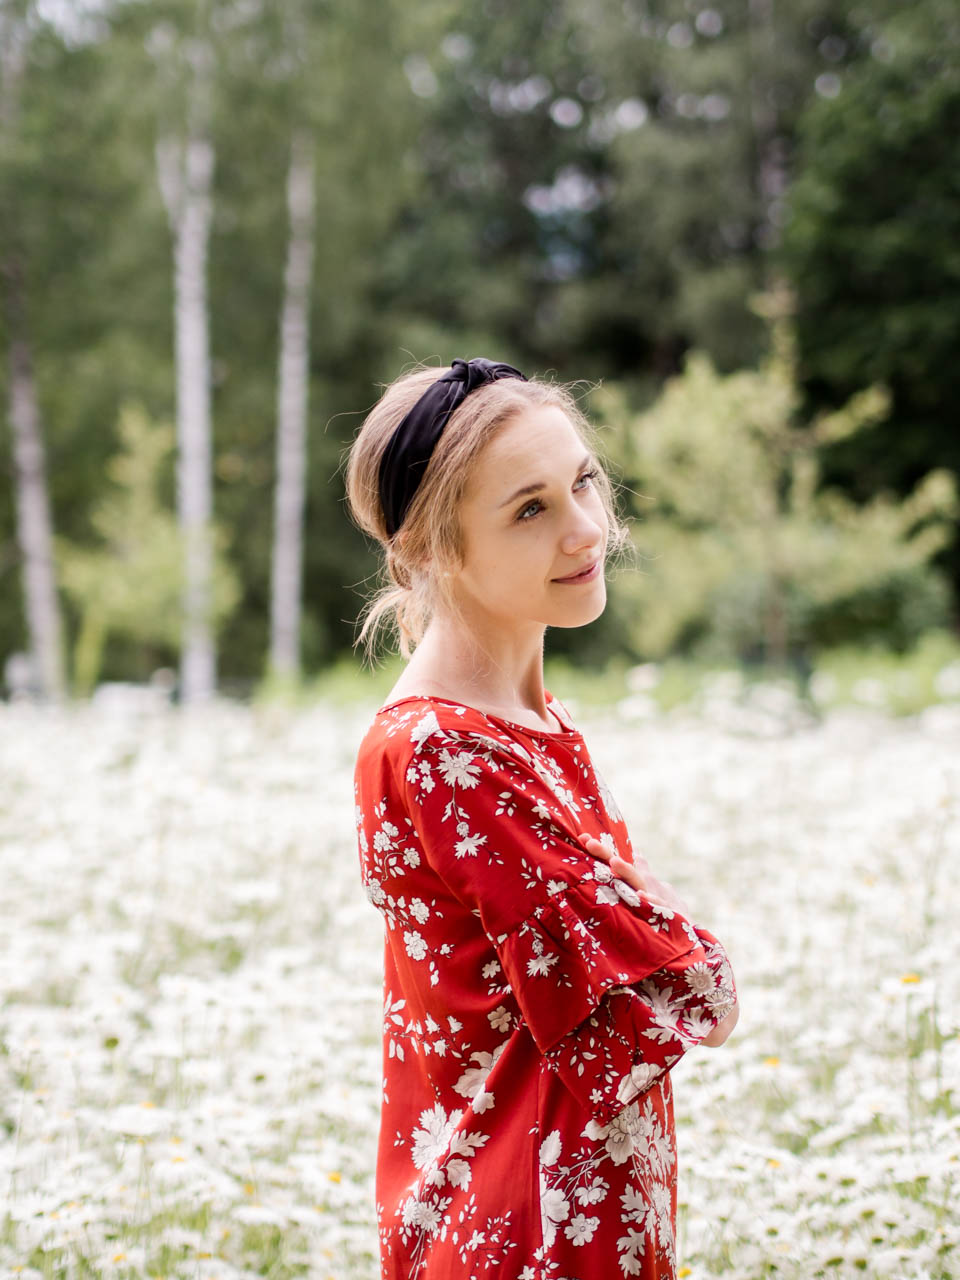 summer-fashion-inspiration-red-dress-style-blogger-muoti-kesä-mekko-bloggaaja